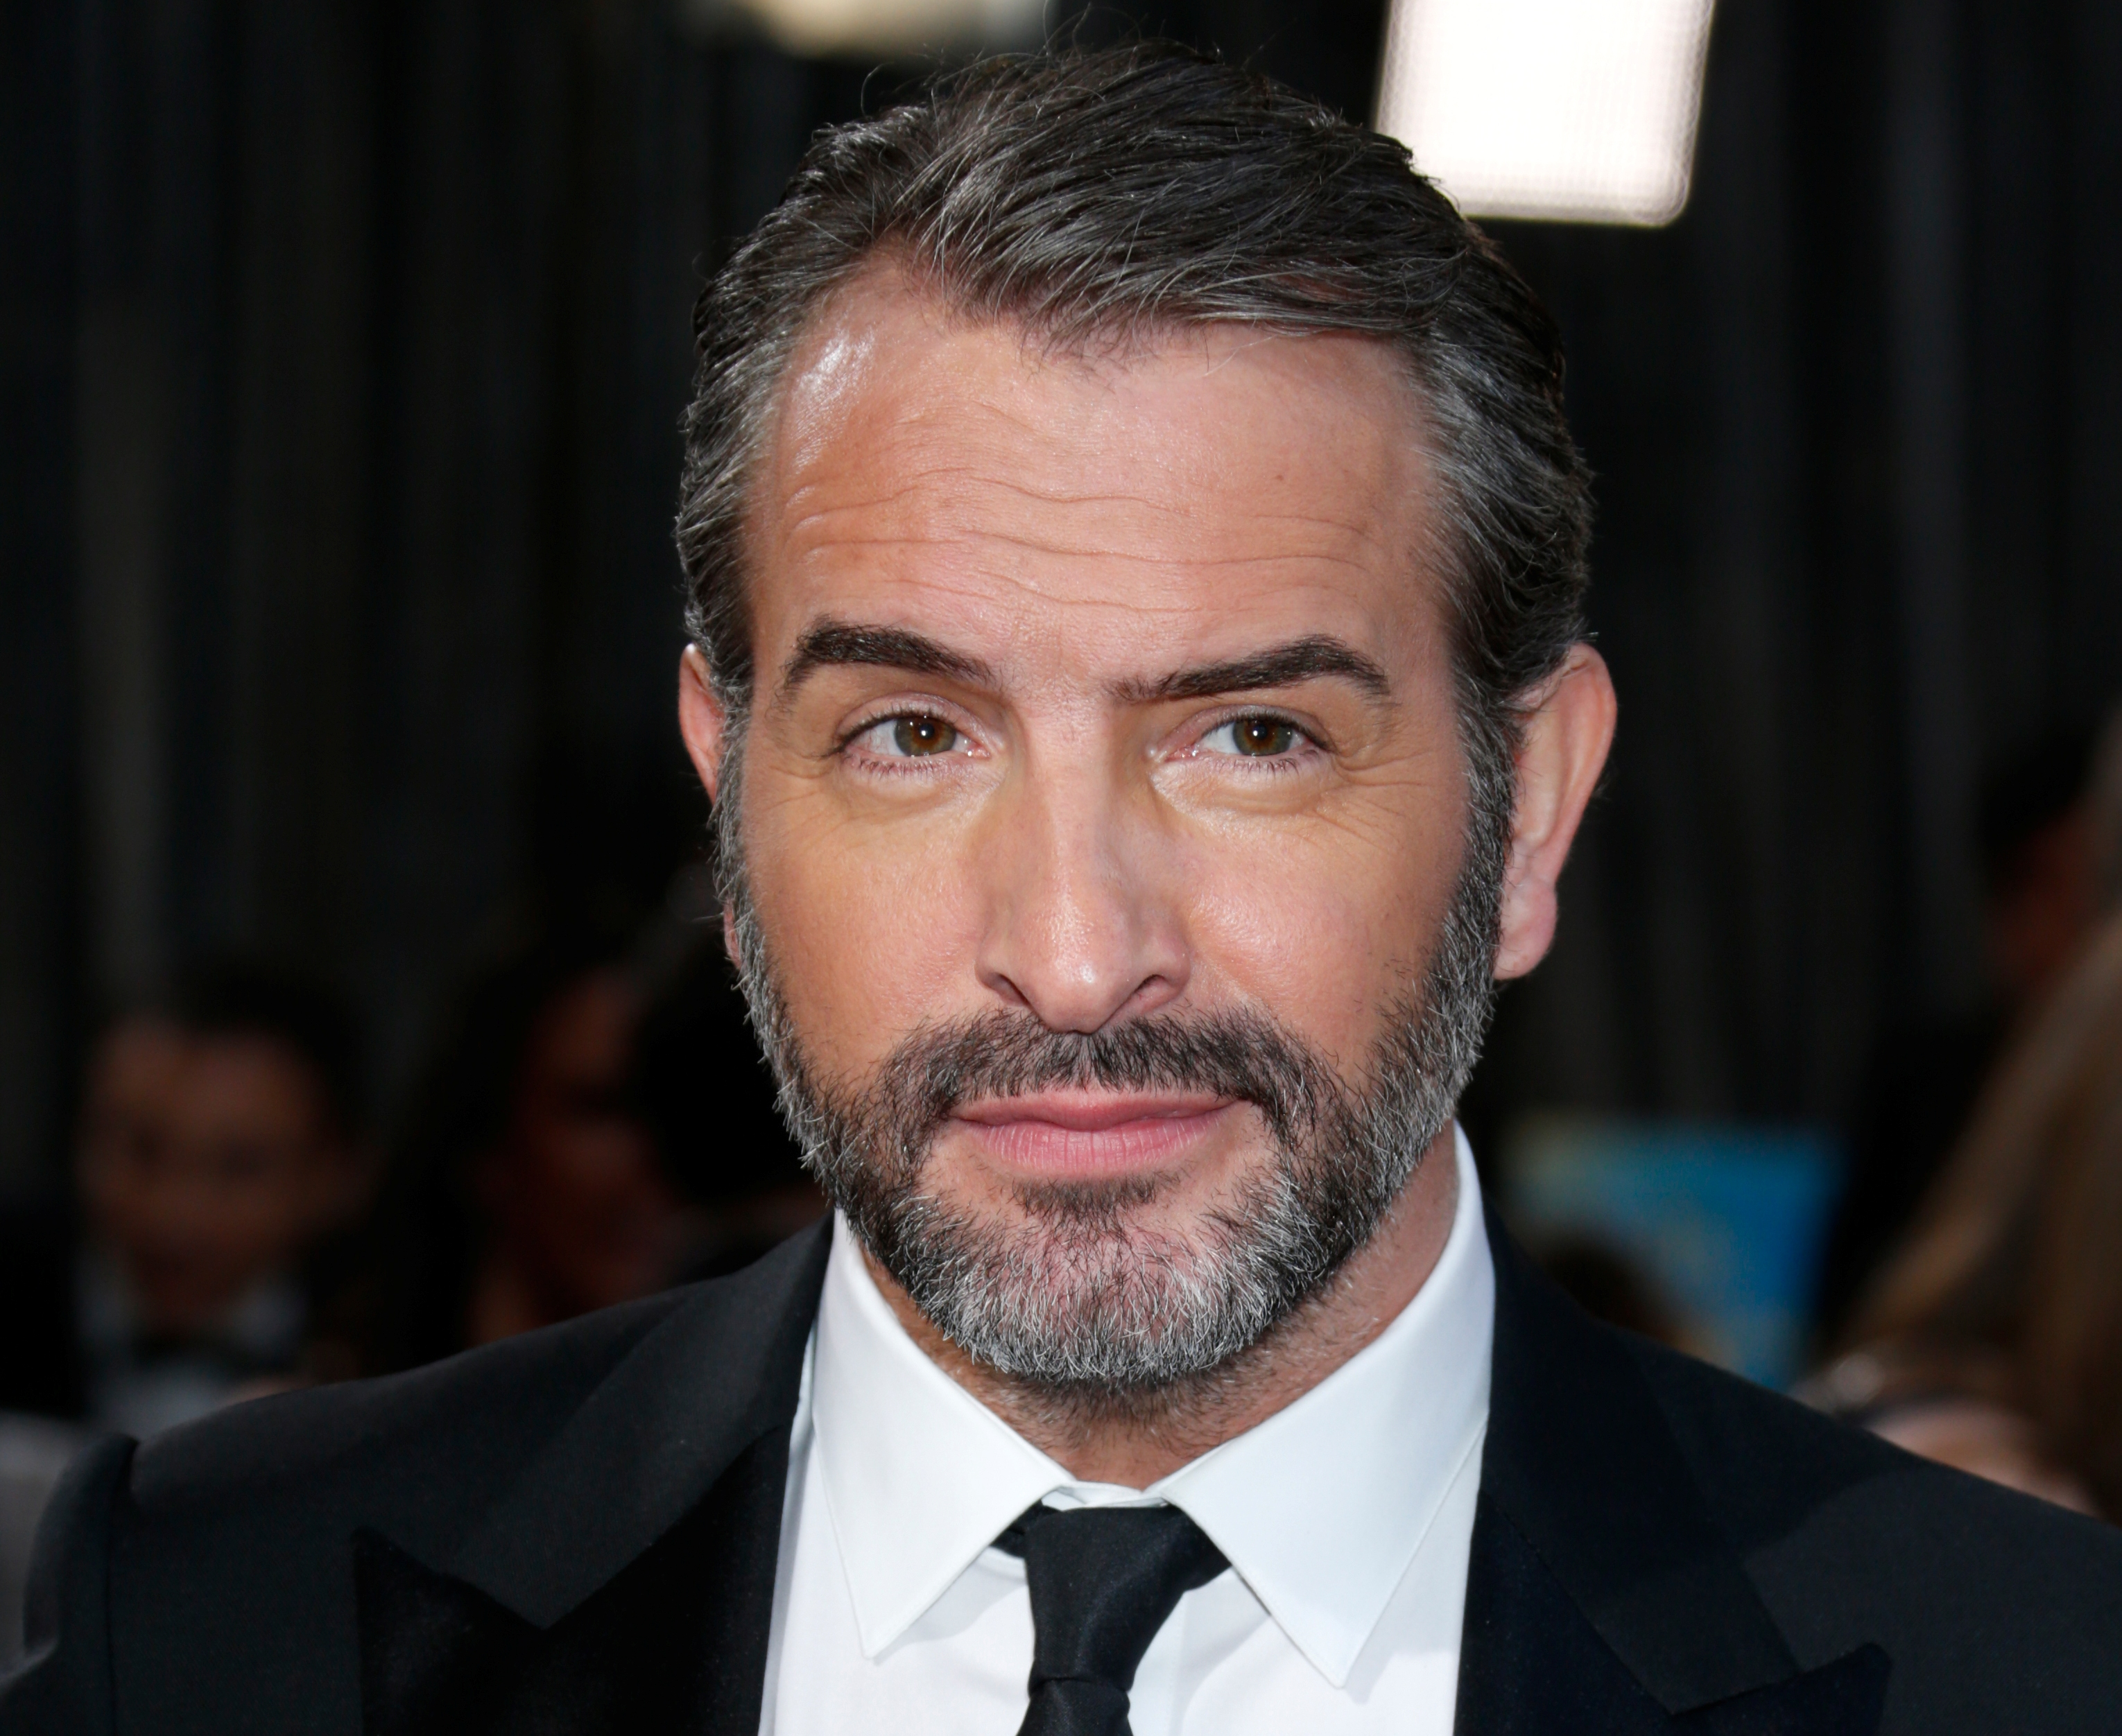 Jean dujardin wallpapers images photos pictures backgrounds for Jean dujardin